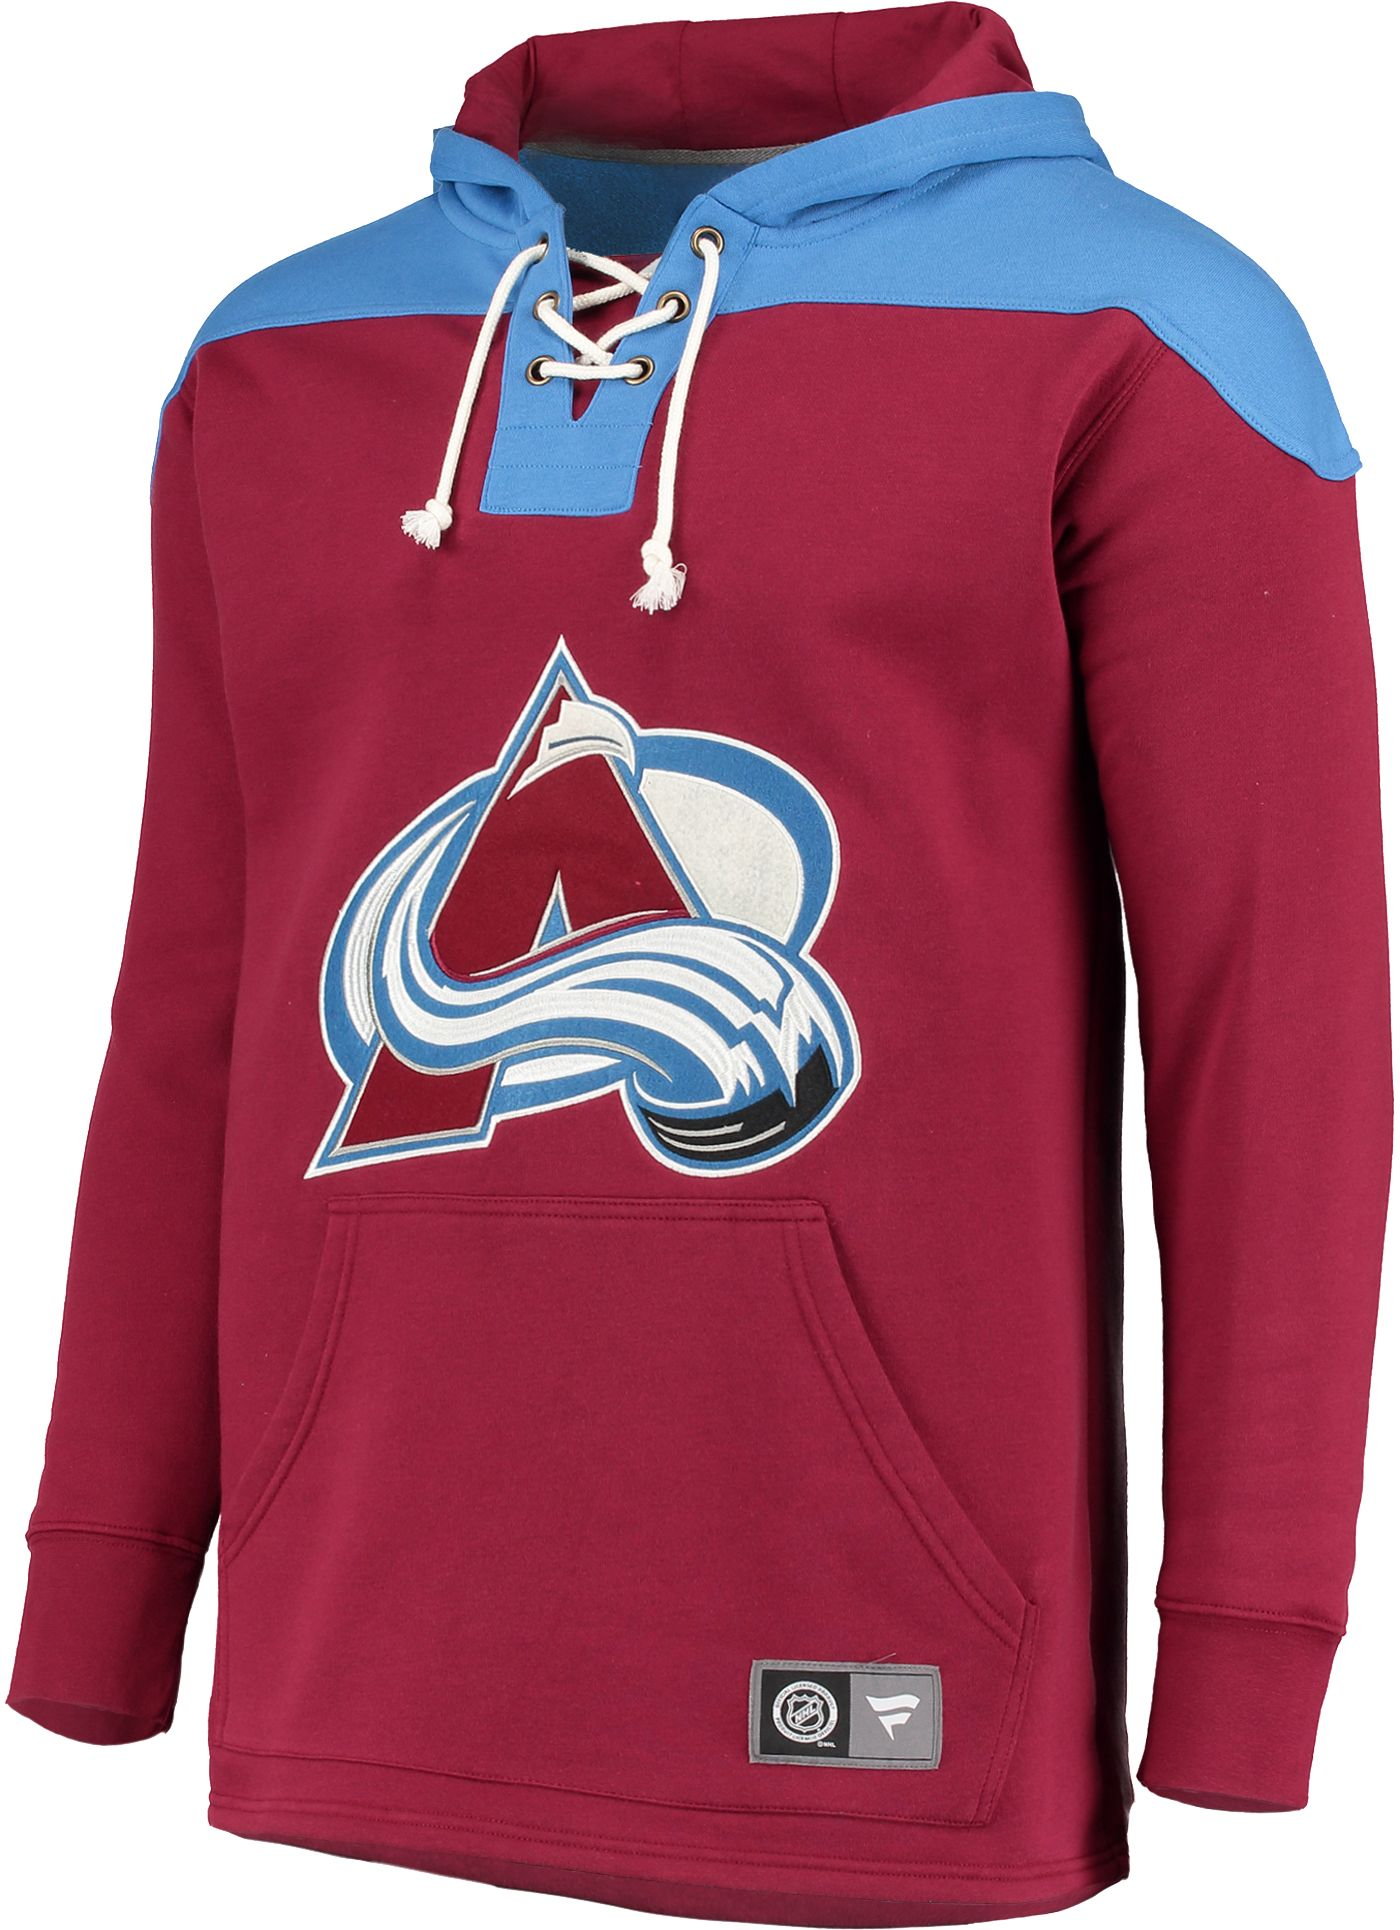 NHL Men's Colorado Avalanche Breakaway Red Pullover Sweatshirt